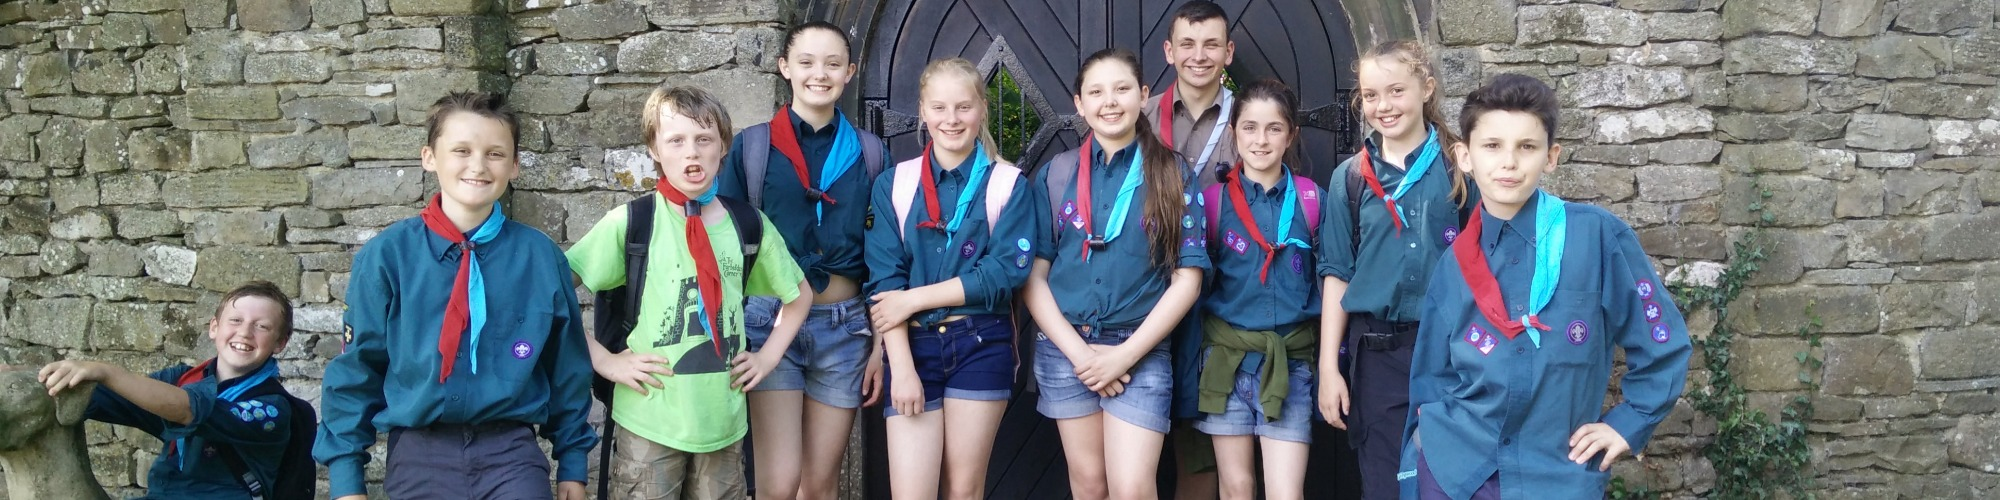 scouts_4